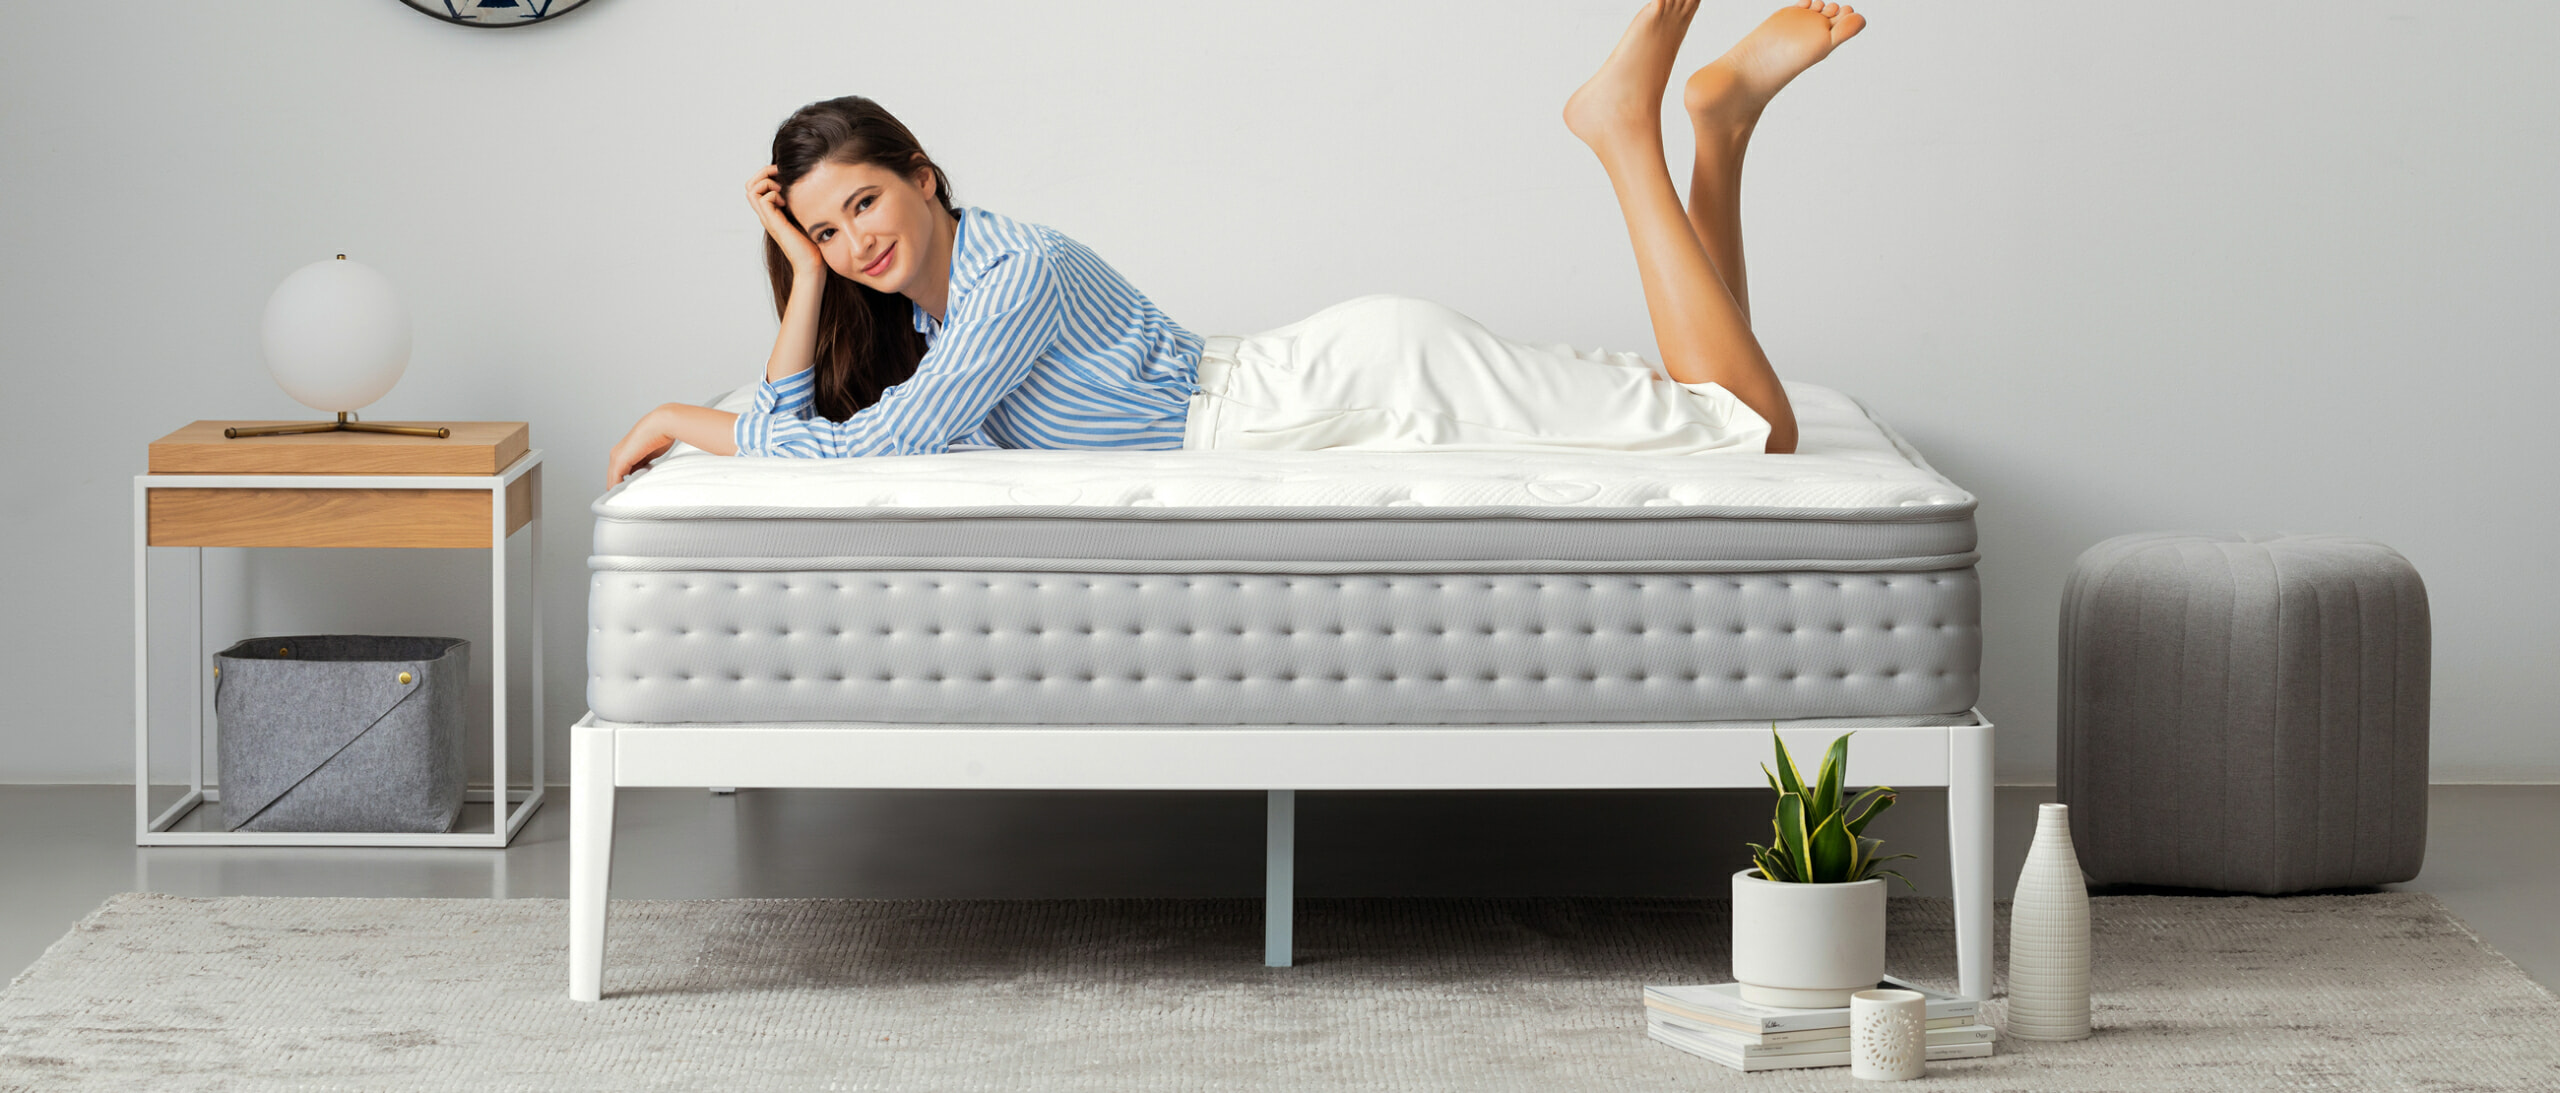 Introducing the Sunrise bed collection